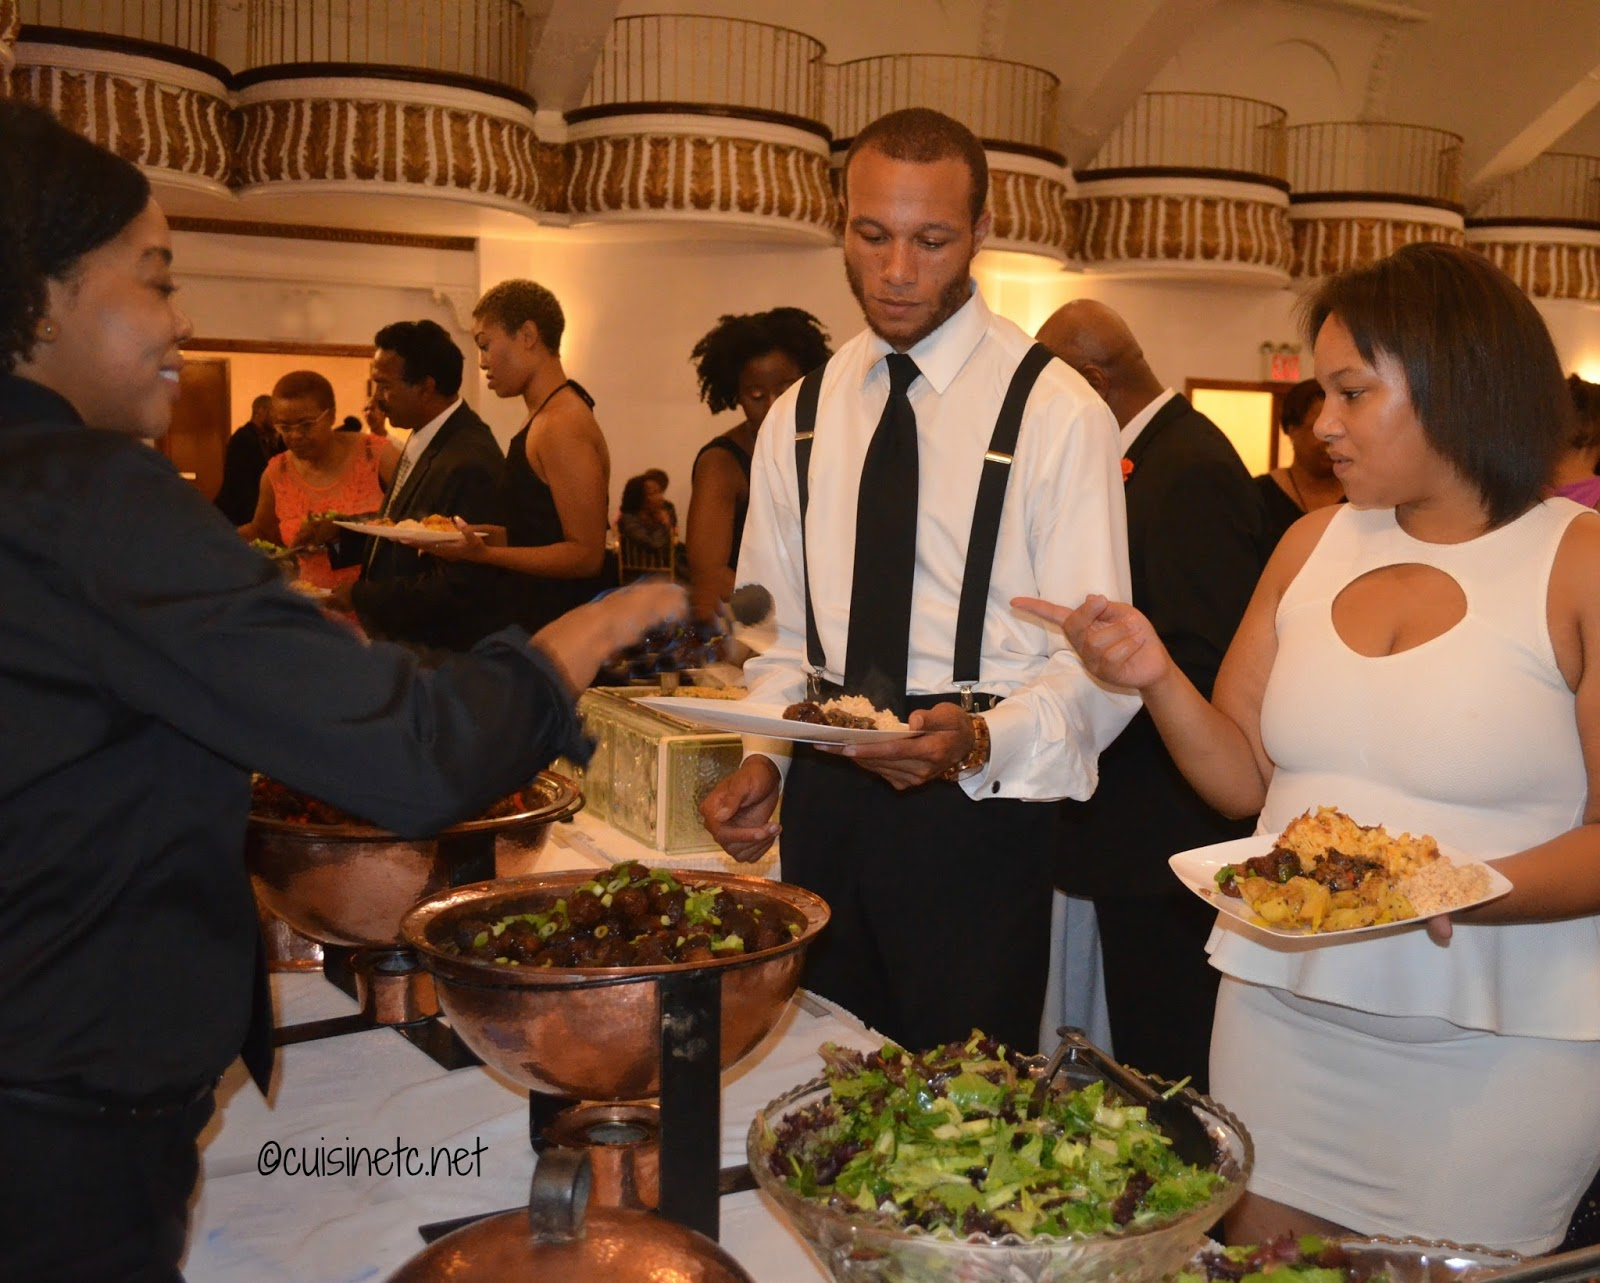 Not Your Traditional Harlem Wedding Menu This Bride And Groom Requested Global Bold Flavors That Honored Their Religious Beliefs No Pork Or Shellfish As